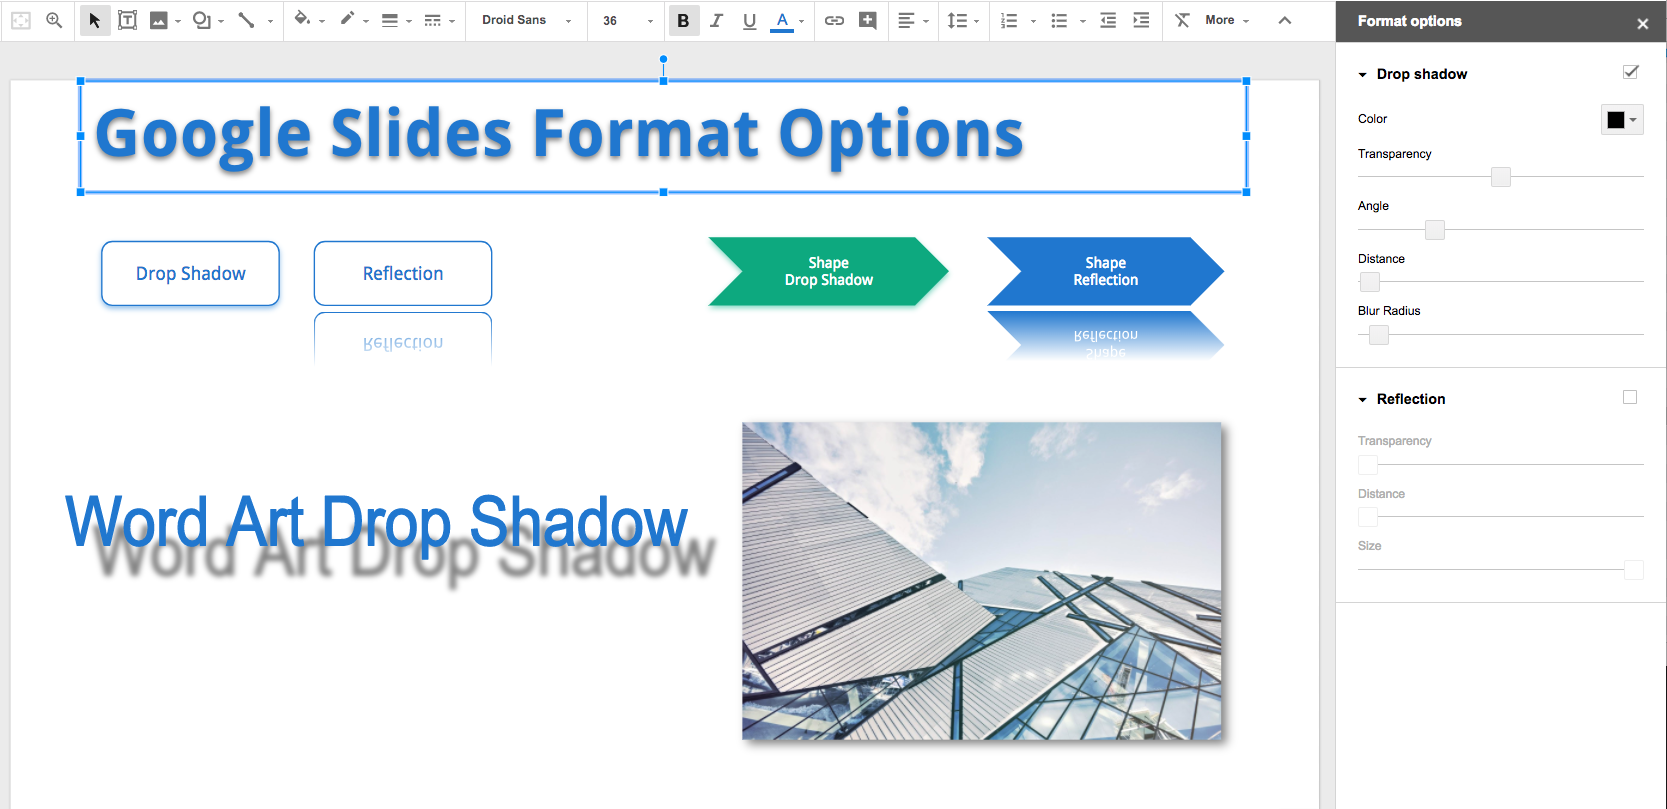 Google Slides Format Options